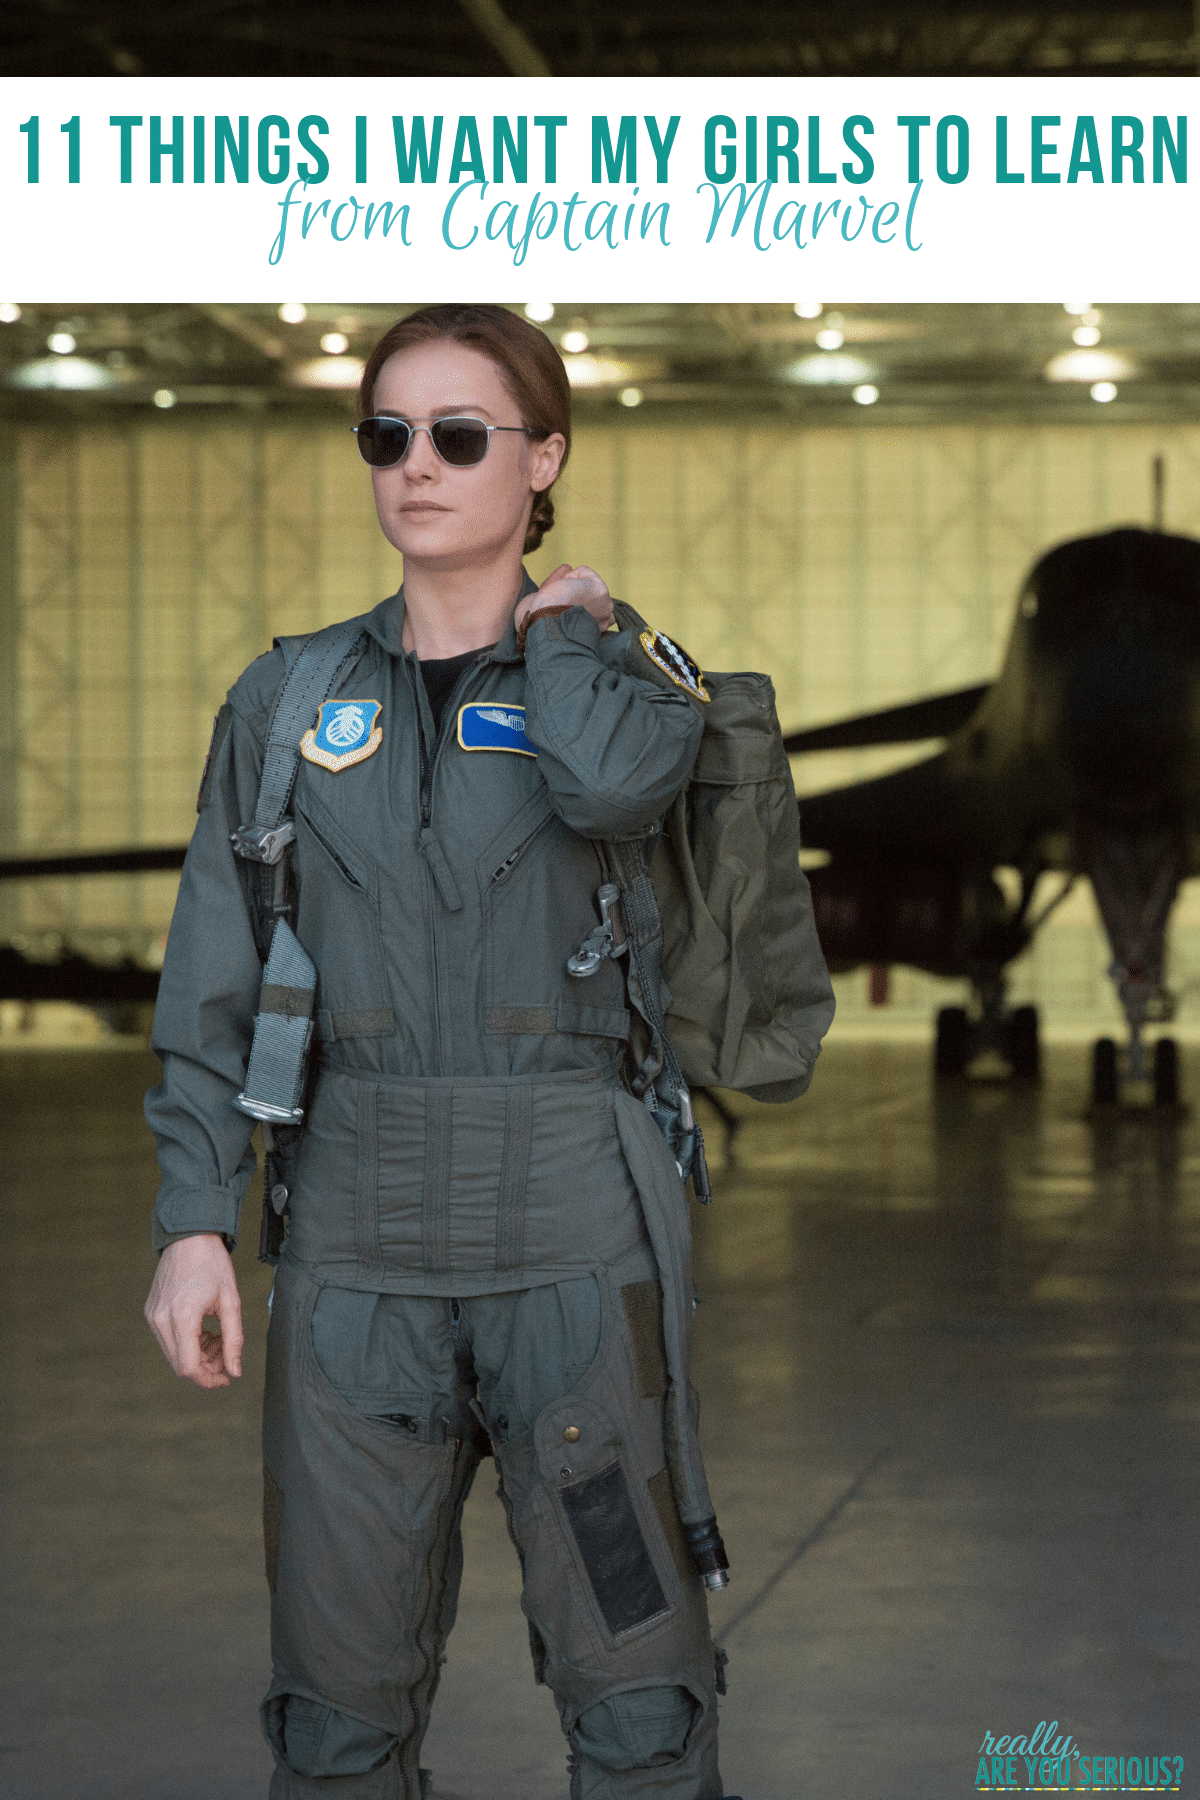 11 things I want my daughters to learn from Captain Marvel